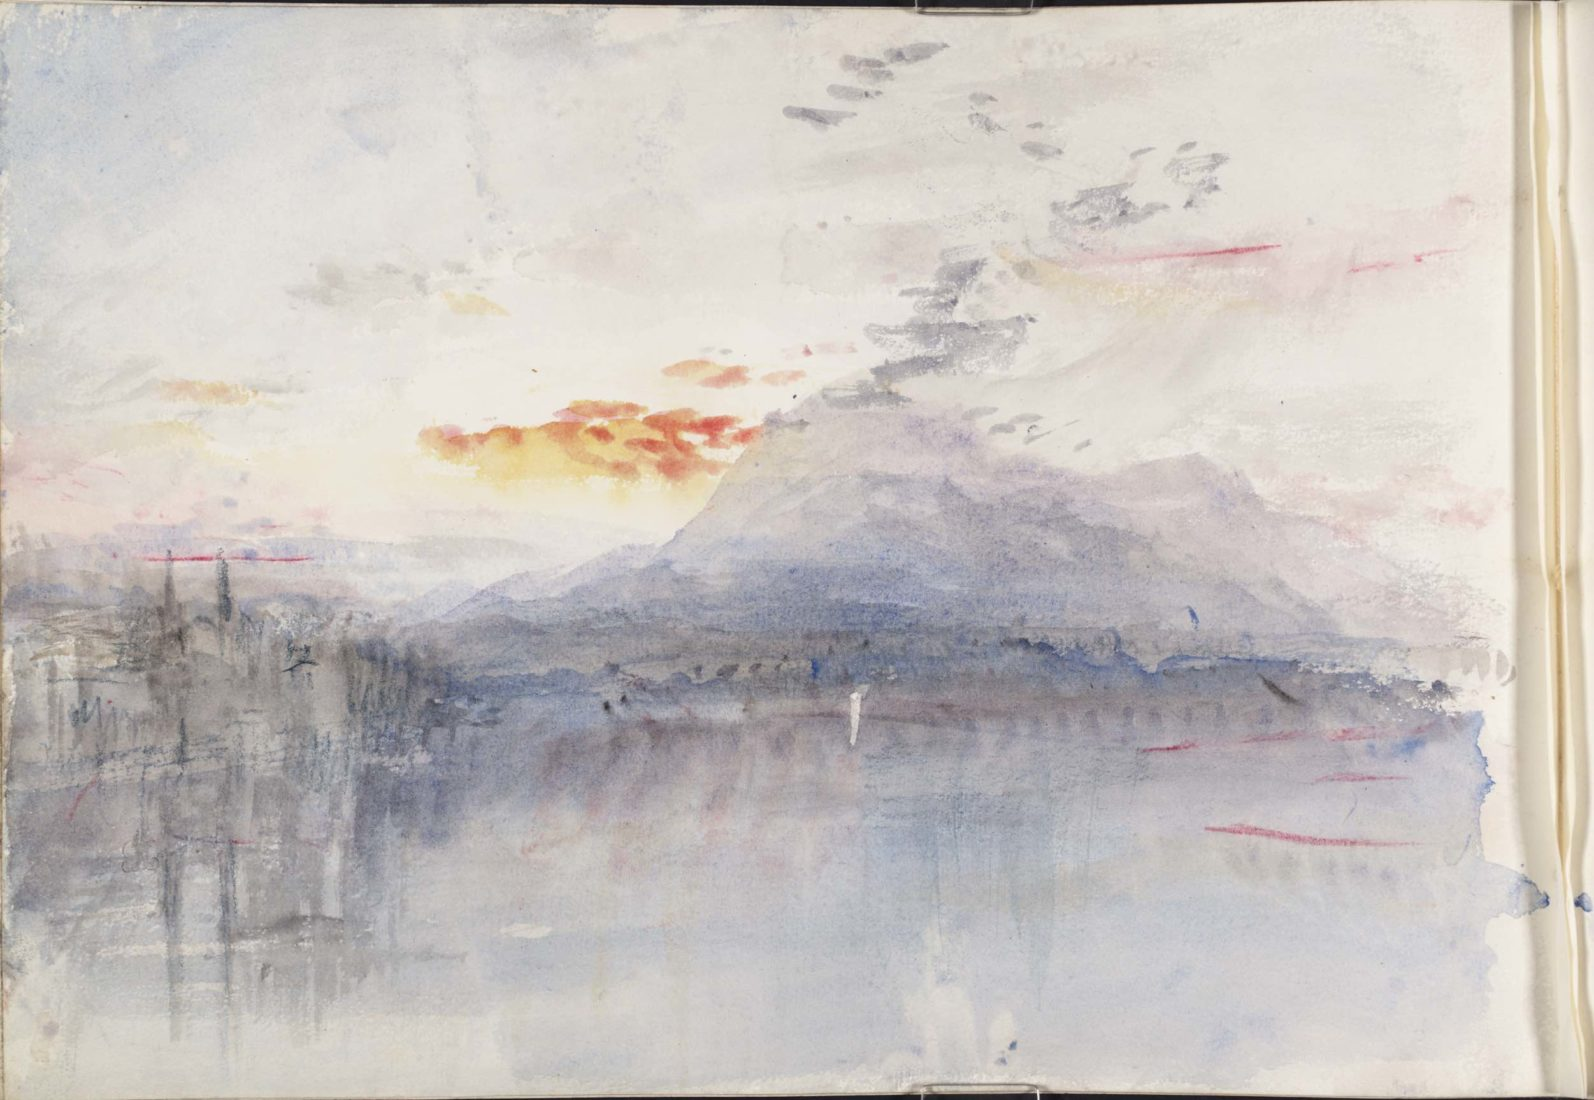 William Turner, The Rigi